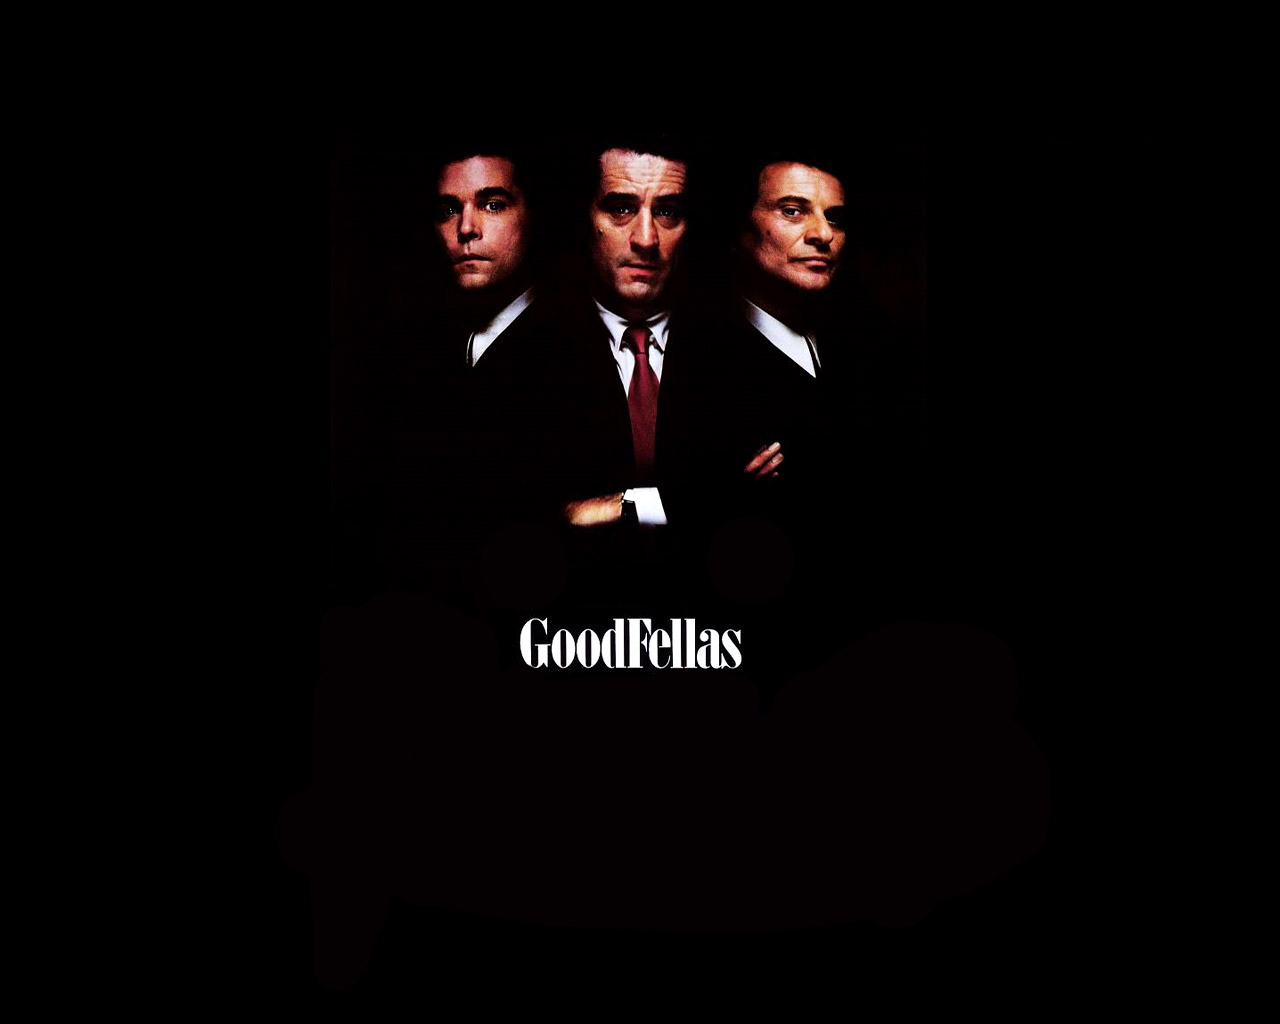 1280x1024 - Goodfellas Wallpapers 11